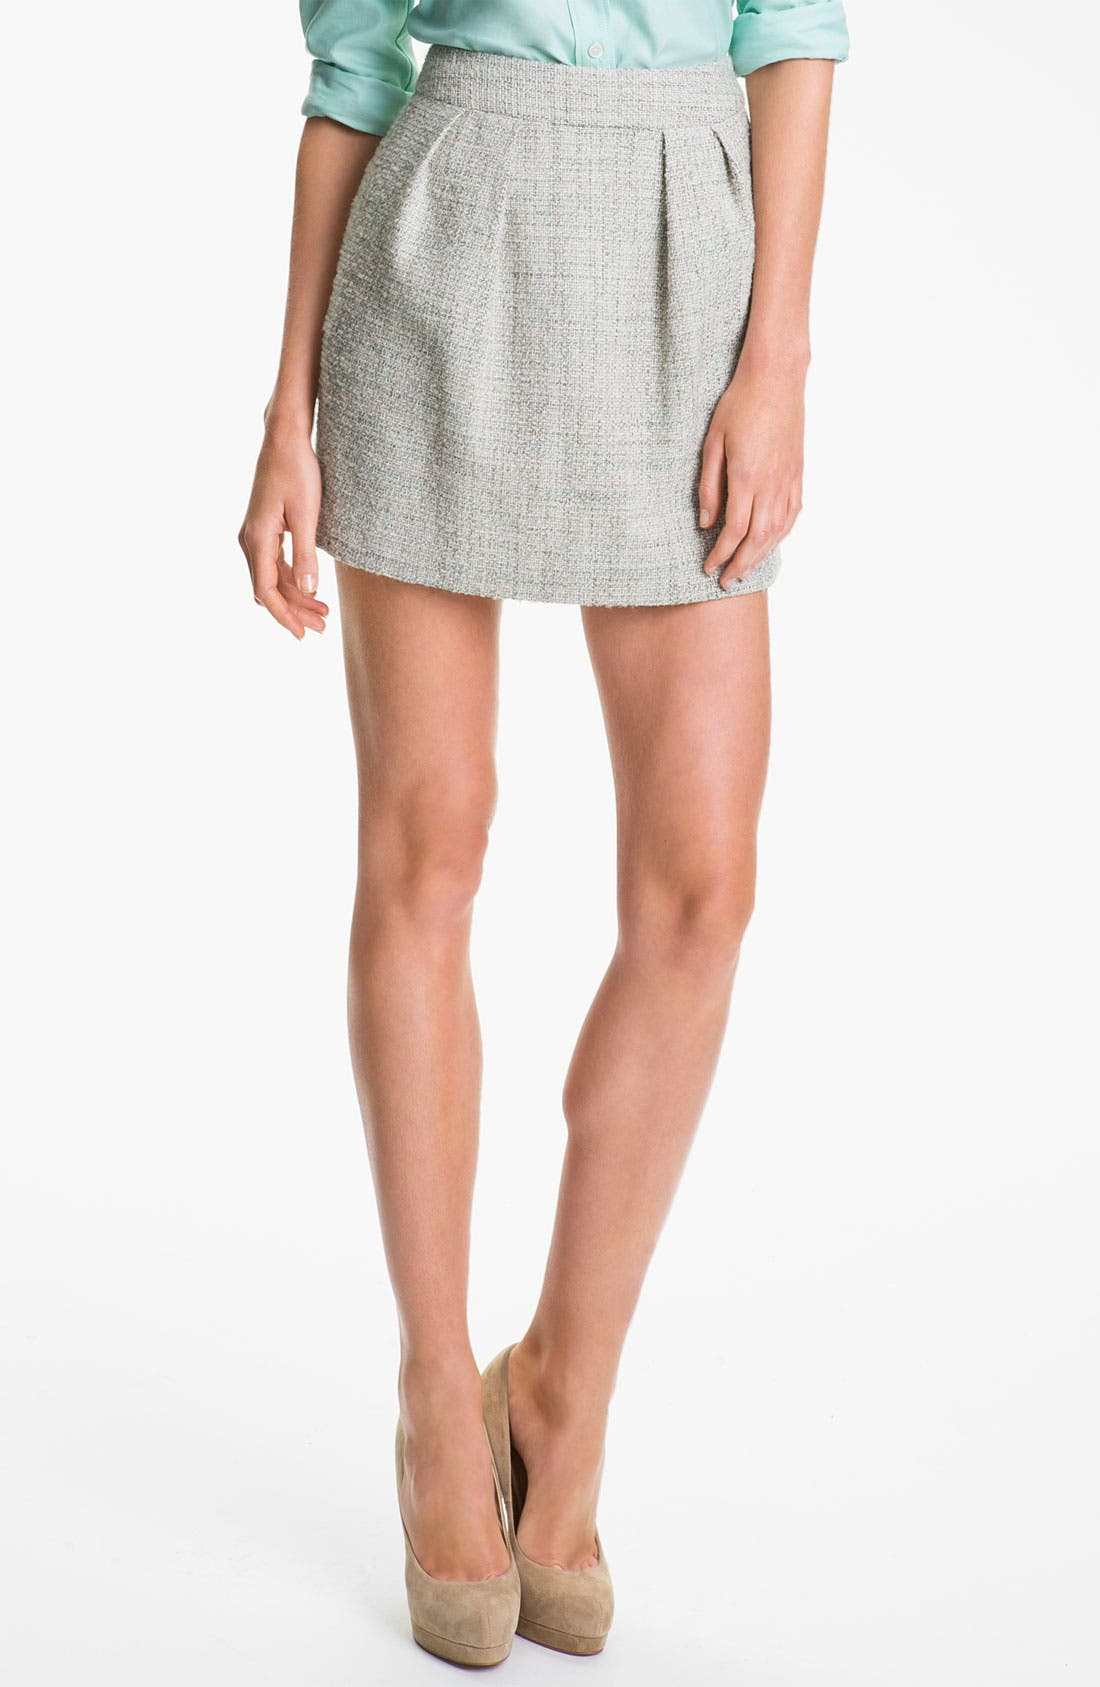 Alternate Image 1 Selected - Theory 'Chablis' Tweed Miniskirt (Online Exclusive)